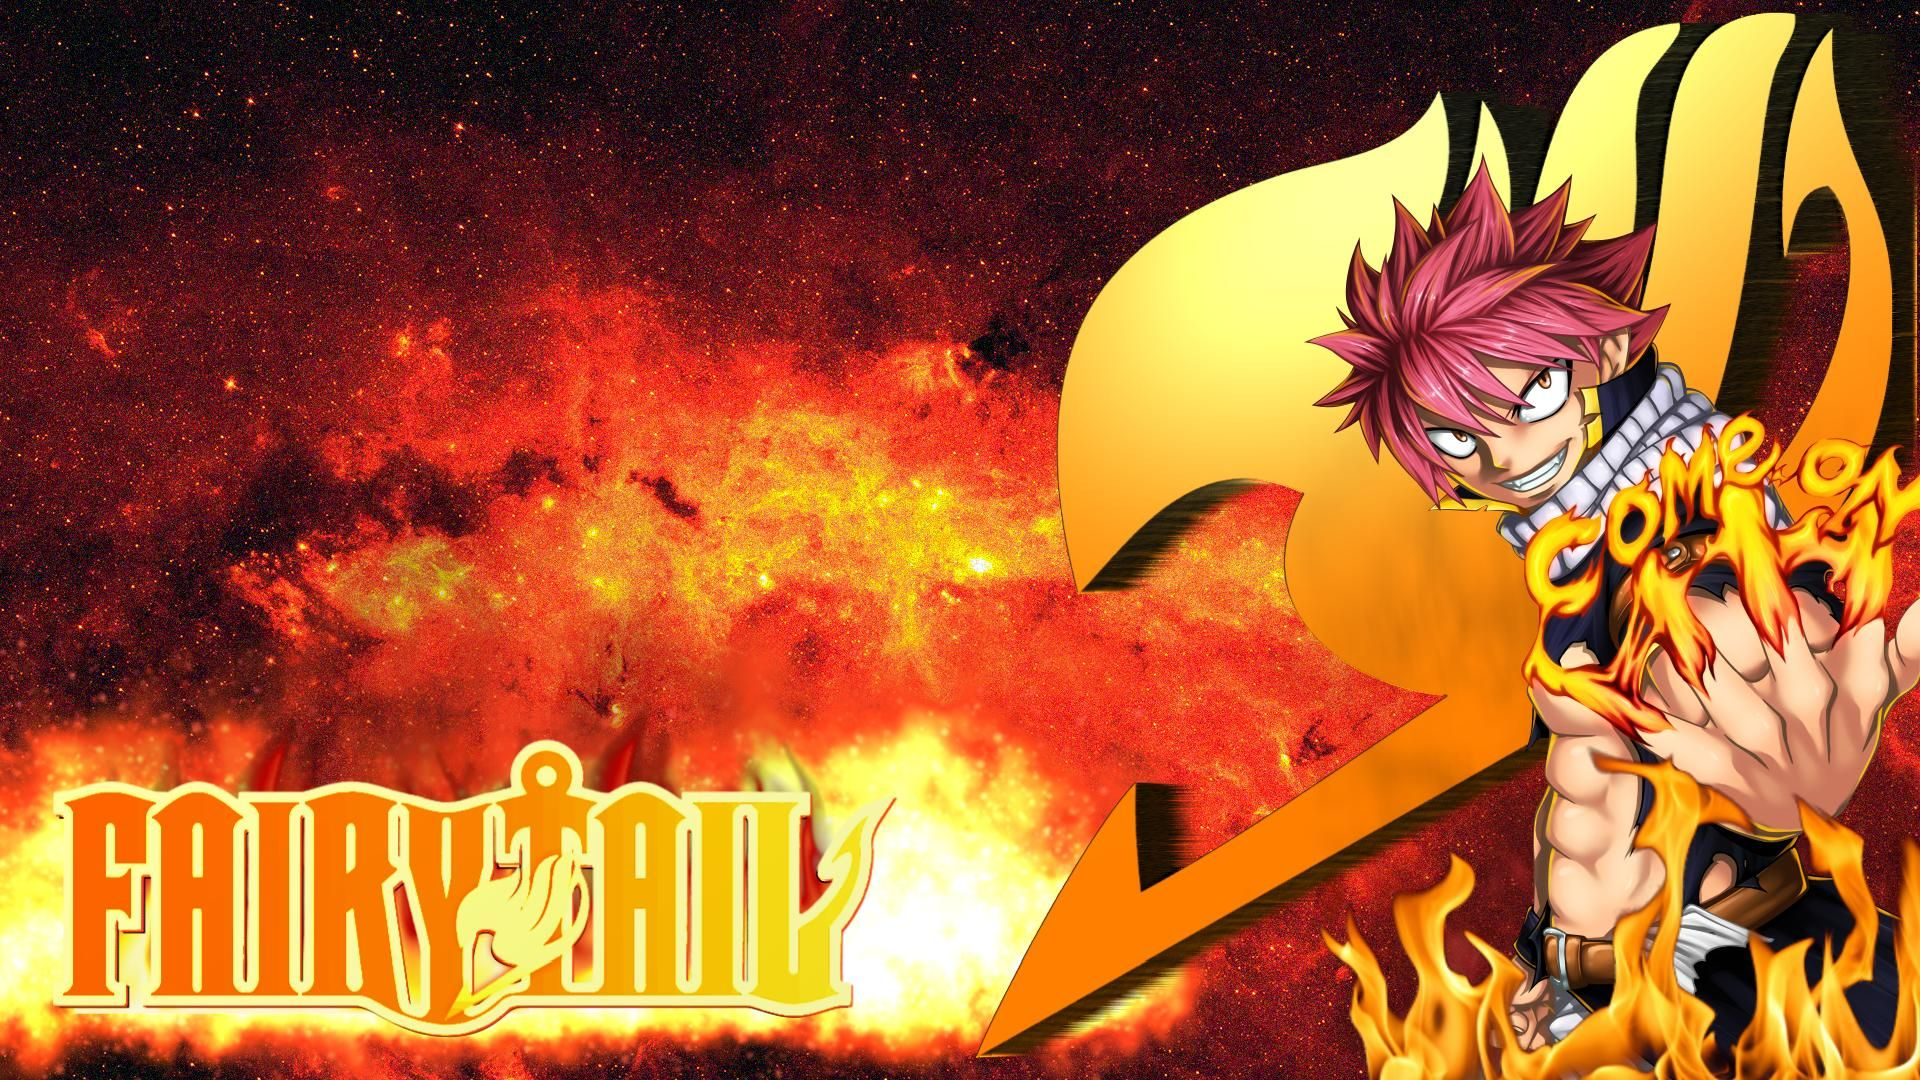 Fairy Tail Natsu Wallpaper For Iphone Sdeerwallpaper Wallpaper Wallpaper Iphone Summer Wallpaper Iphone Disney